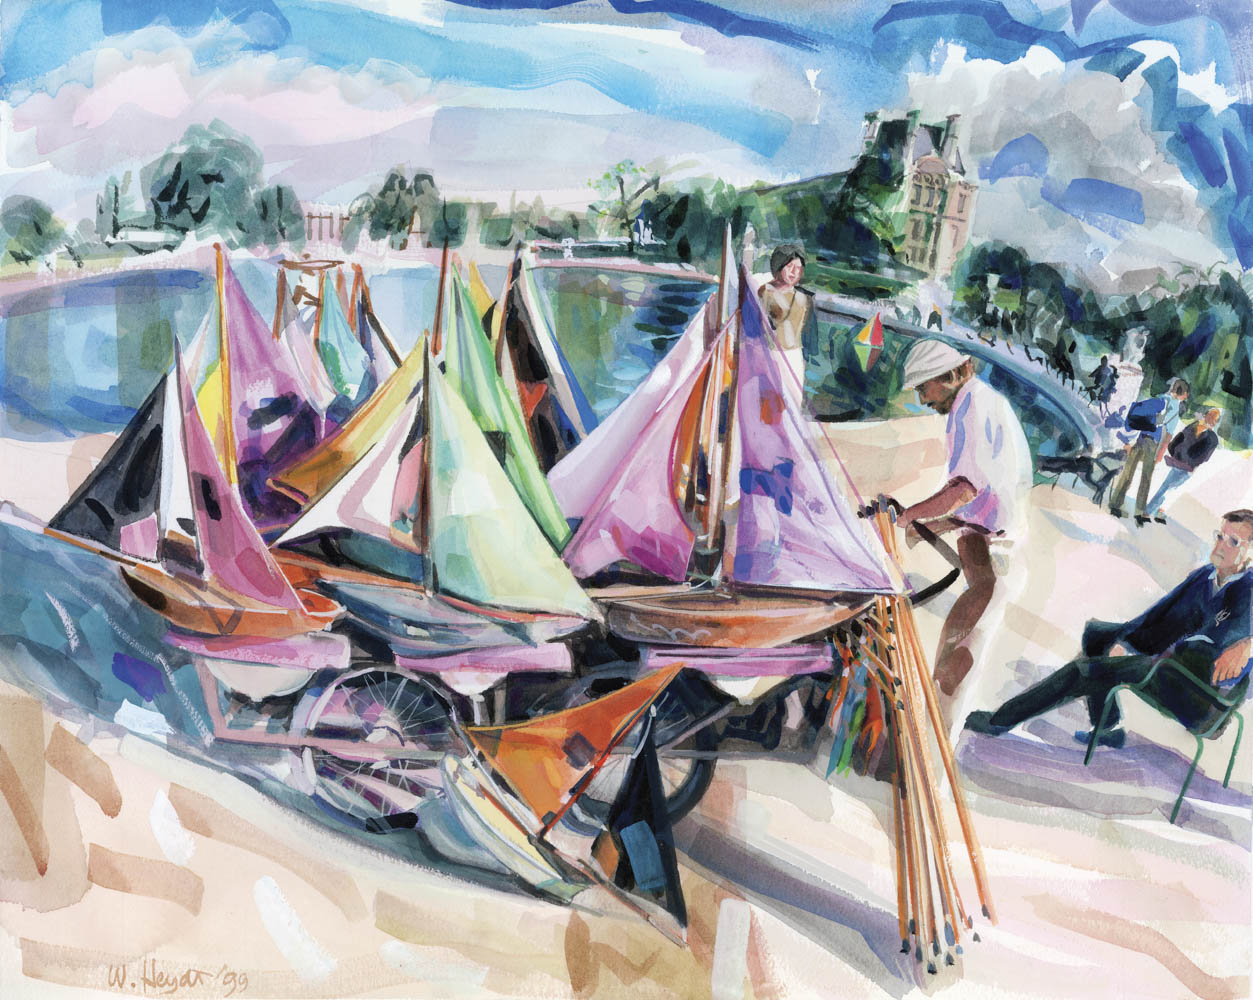 A September sun illuminates the boat tender's stand, No. 2 - The Tuileries pond, Paris